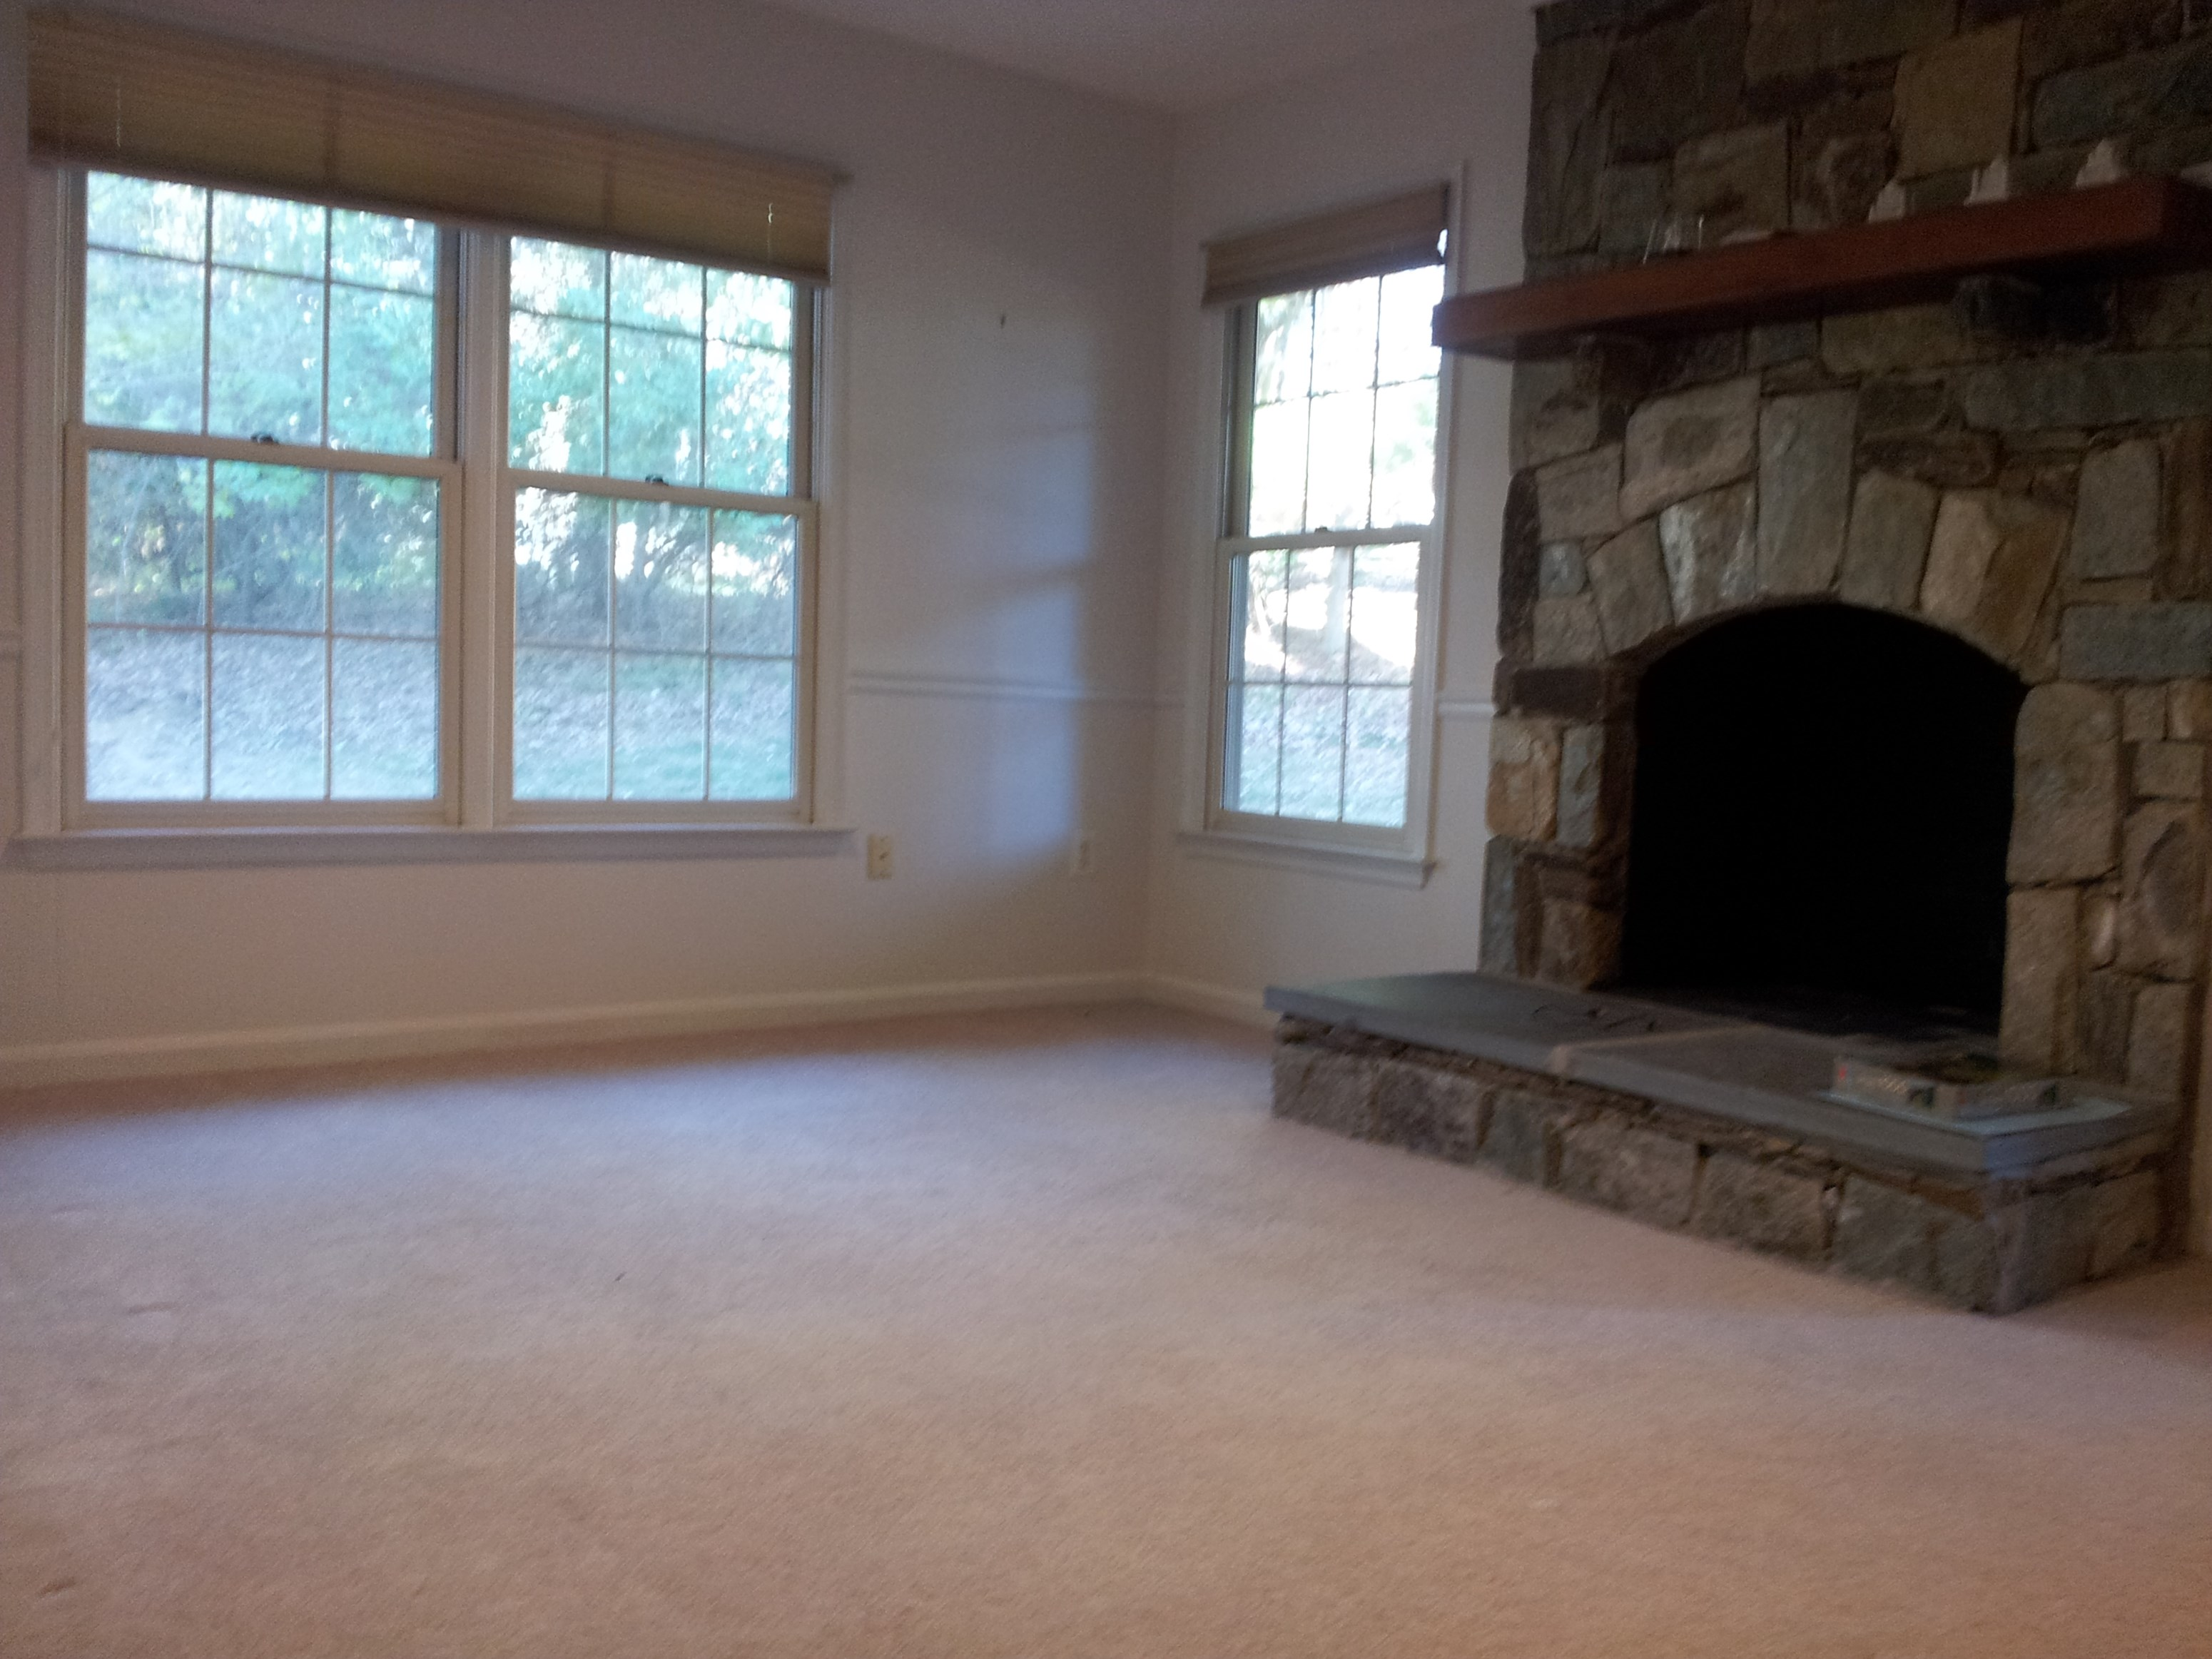 basement bedroom with private bath walk in closet private entrance in